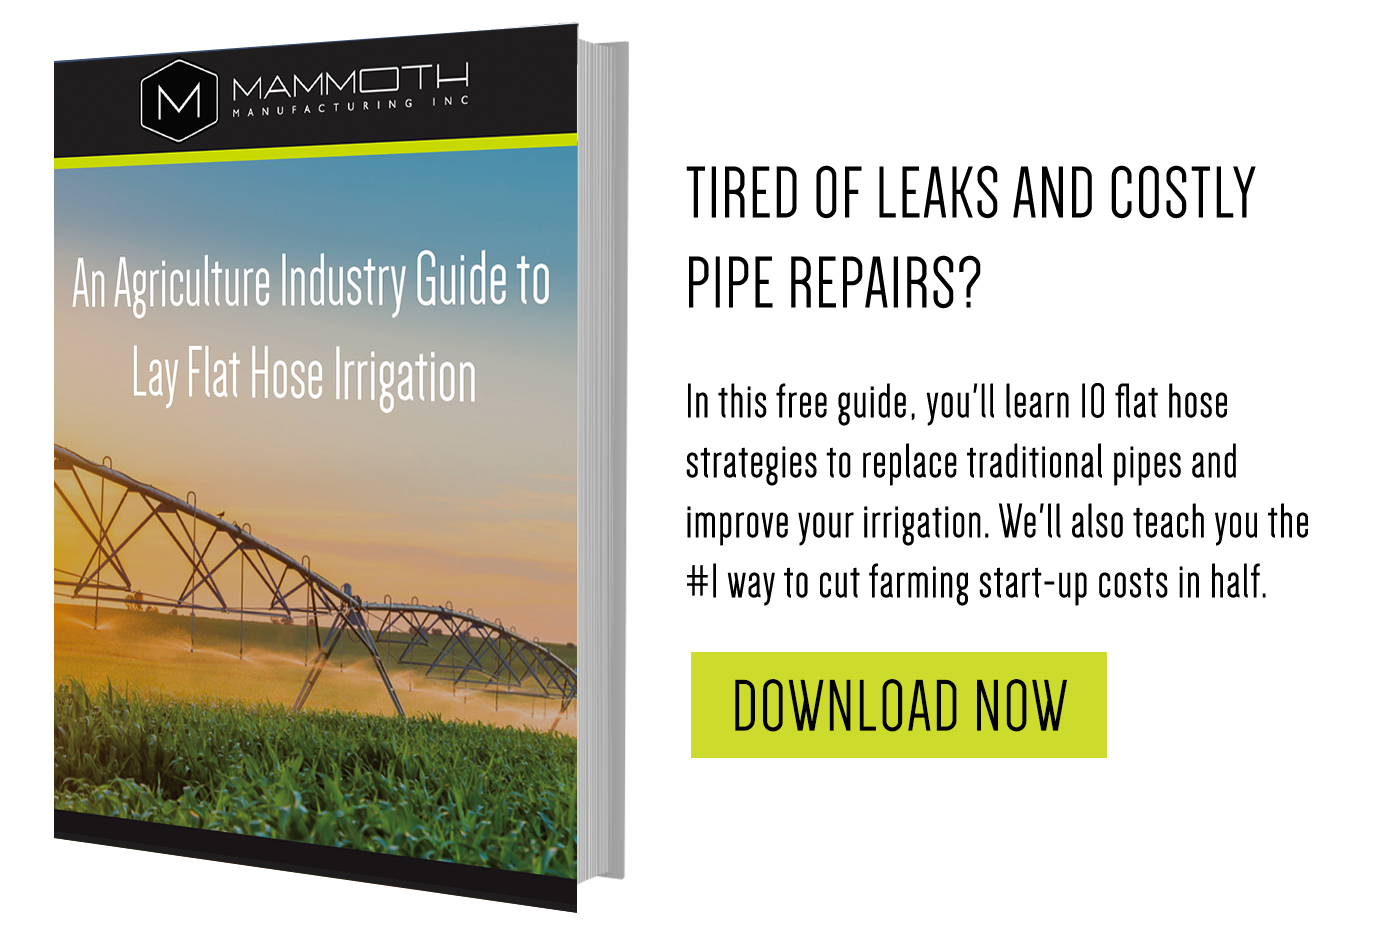 An Agriculture Industry Guide to Lay Flat Hose Irrigation